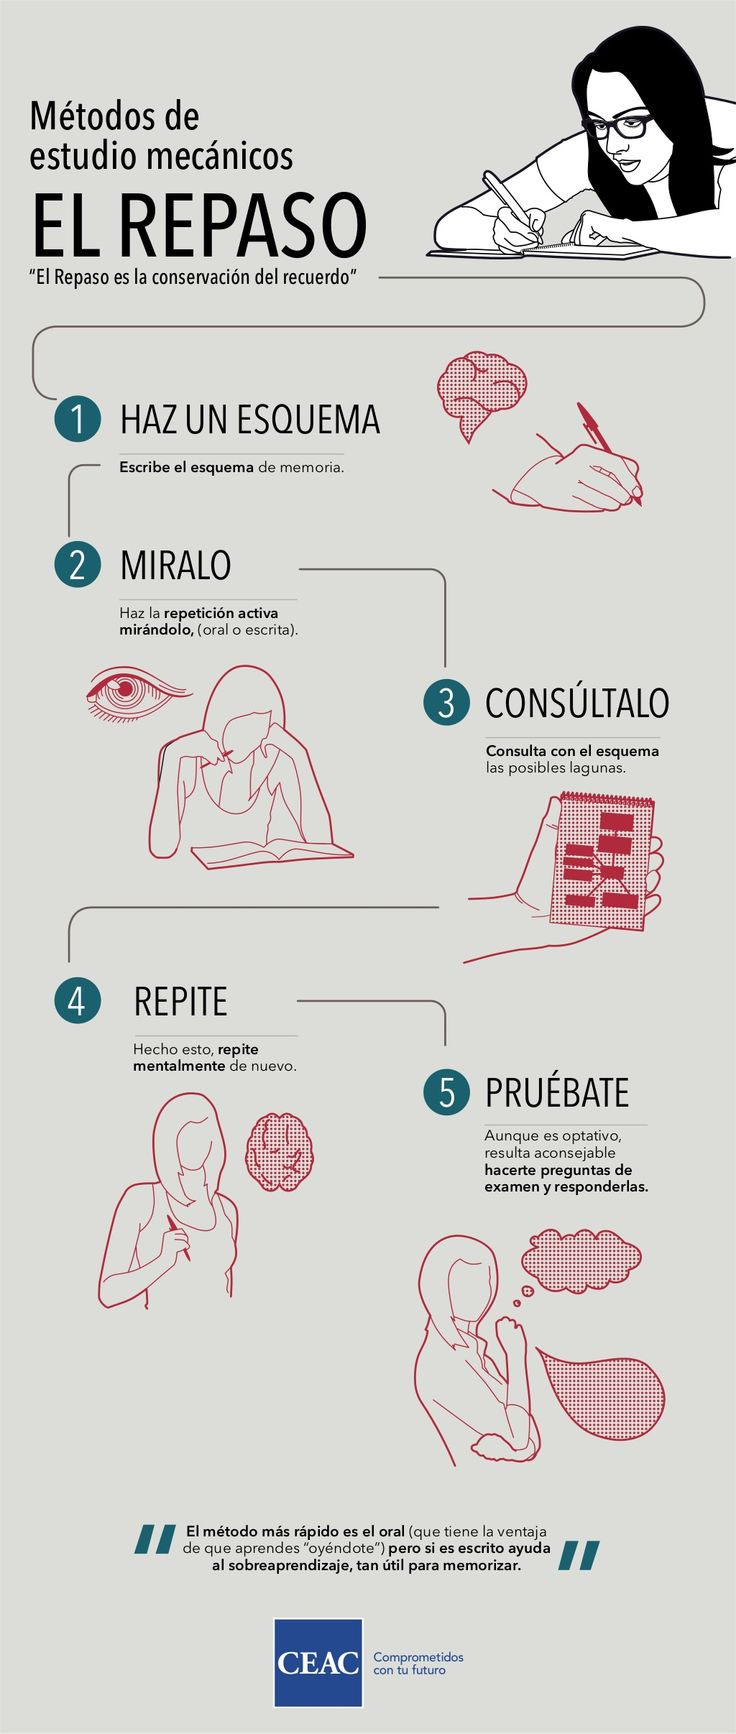 study tips for exams,study methods for visual learners,study tips study habits Study Techniques, Study Methods, Learning Tips, School Study Tips, School Notes, Study Inspiration, Studyblr, Study Notes, School Hacks